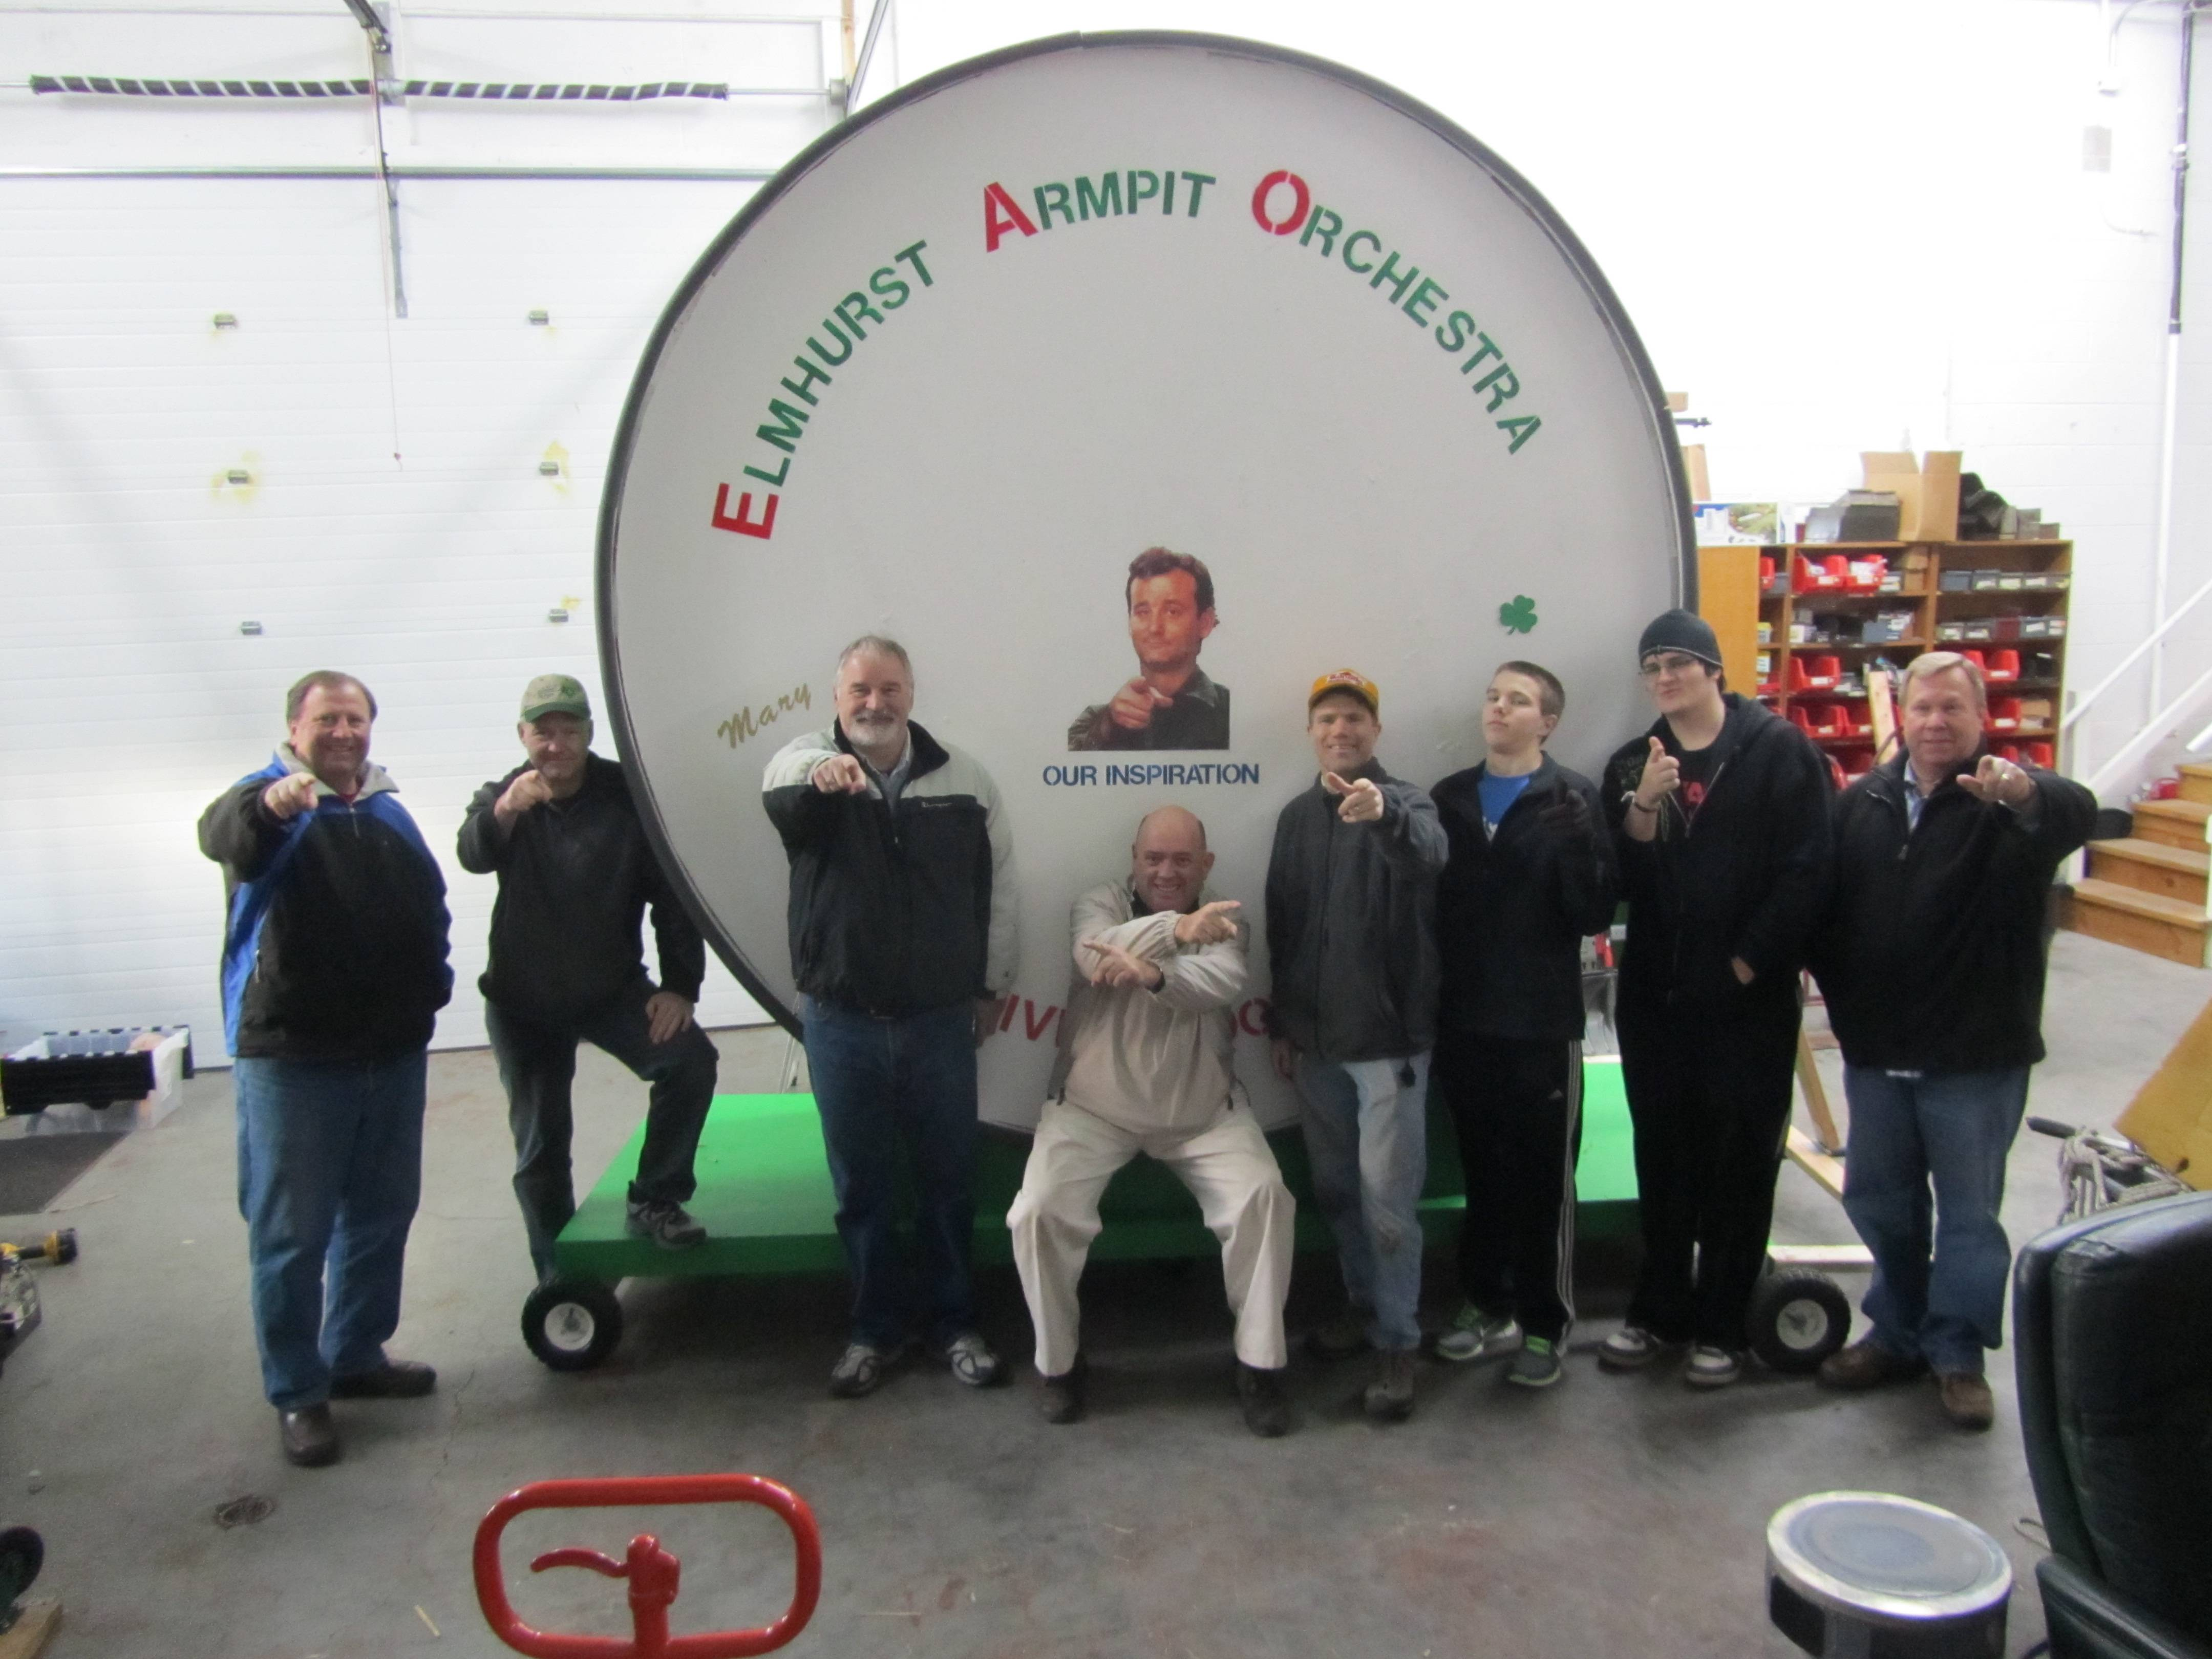 Some men of the Elmhurst Armpit Orchestra with the 'World's Largest Drum'